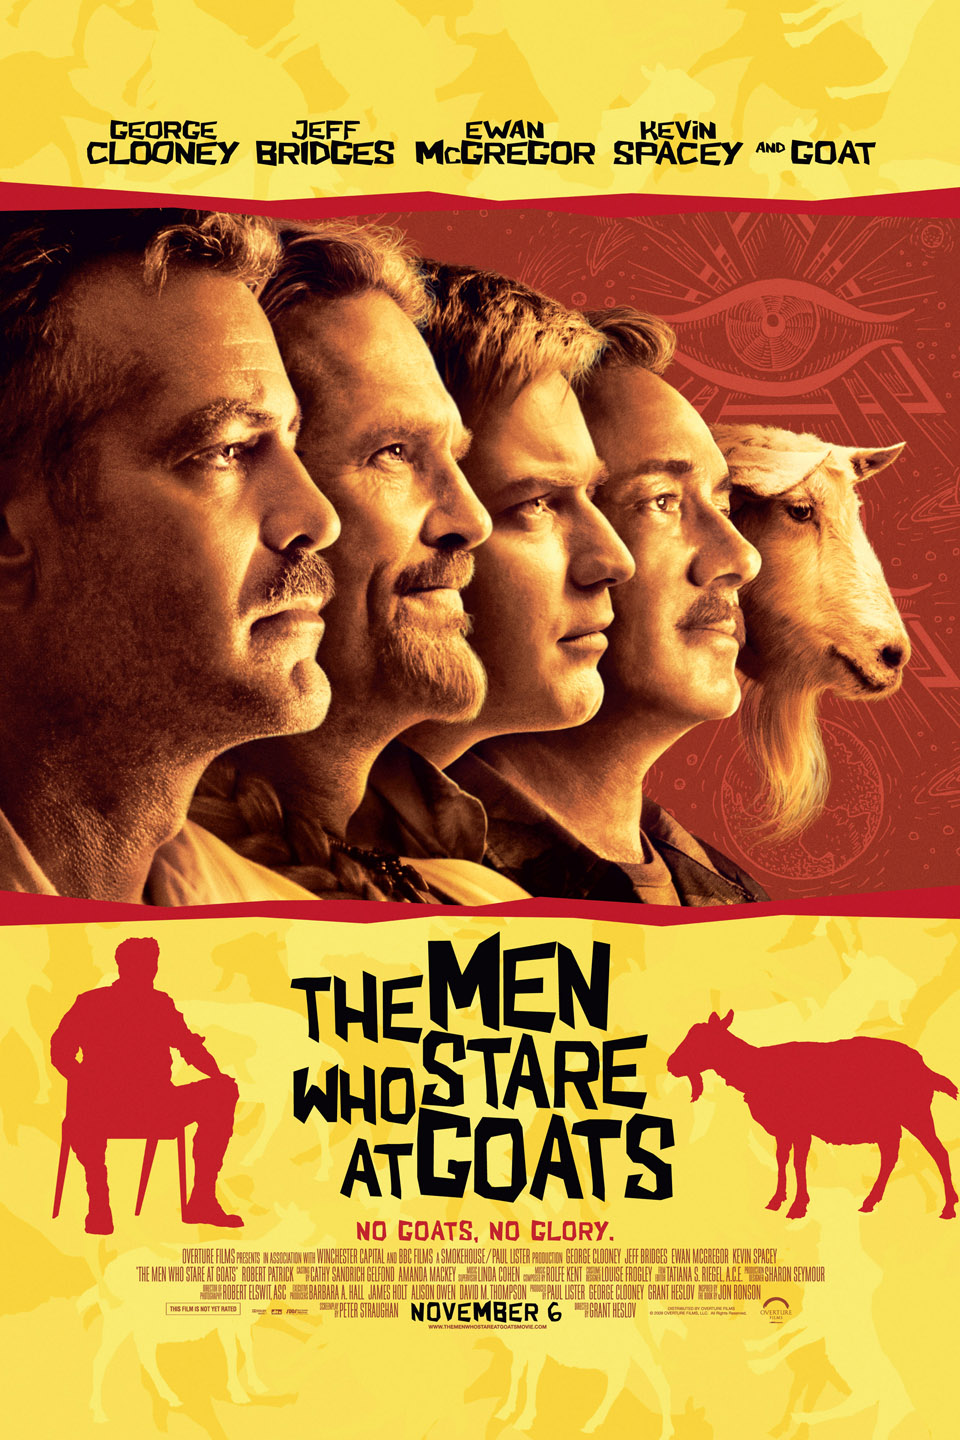 The Men Who Stare at Goats-The Men Who Stare at Goats